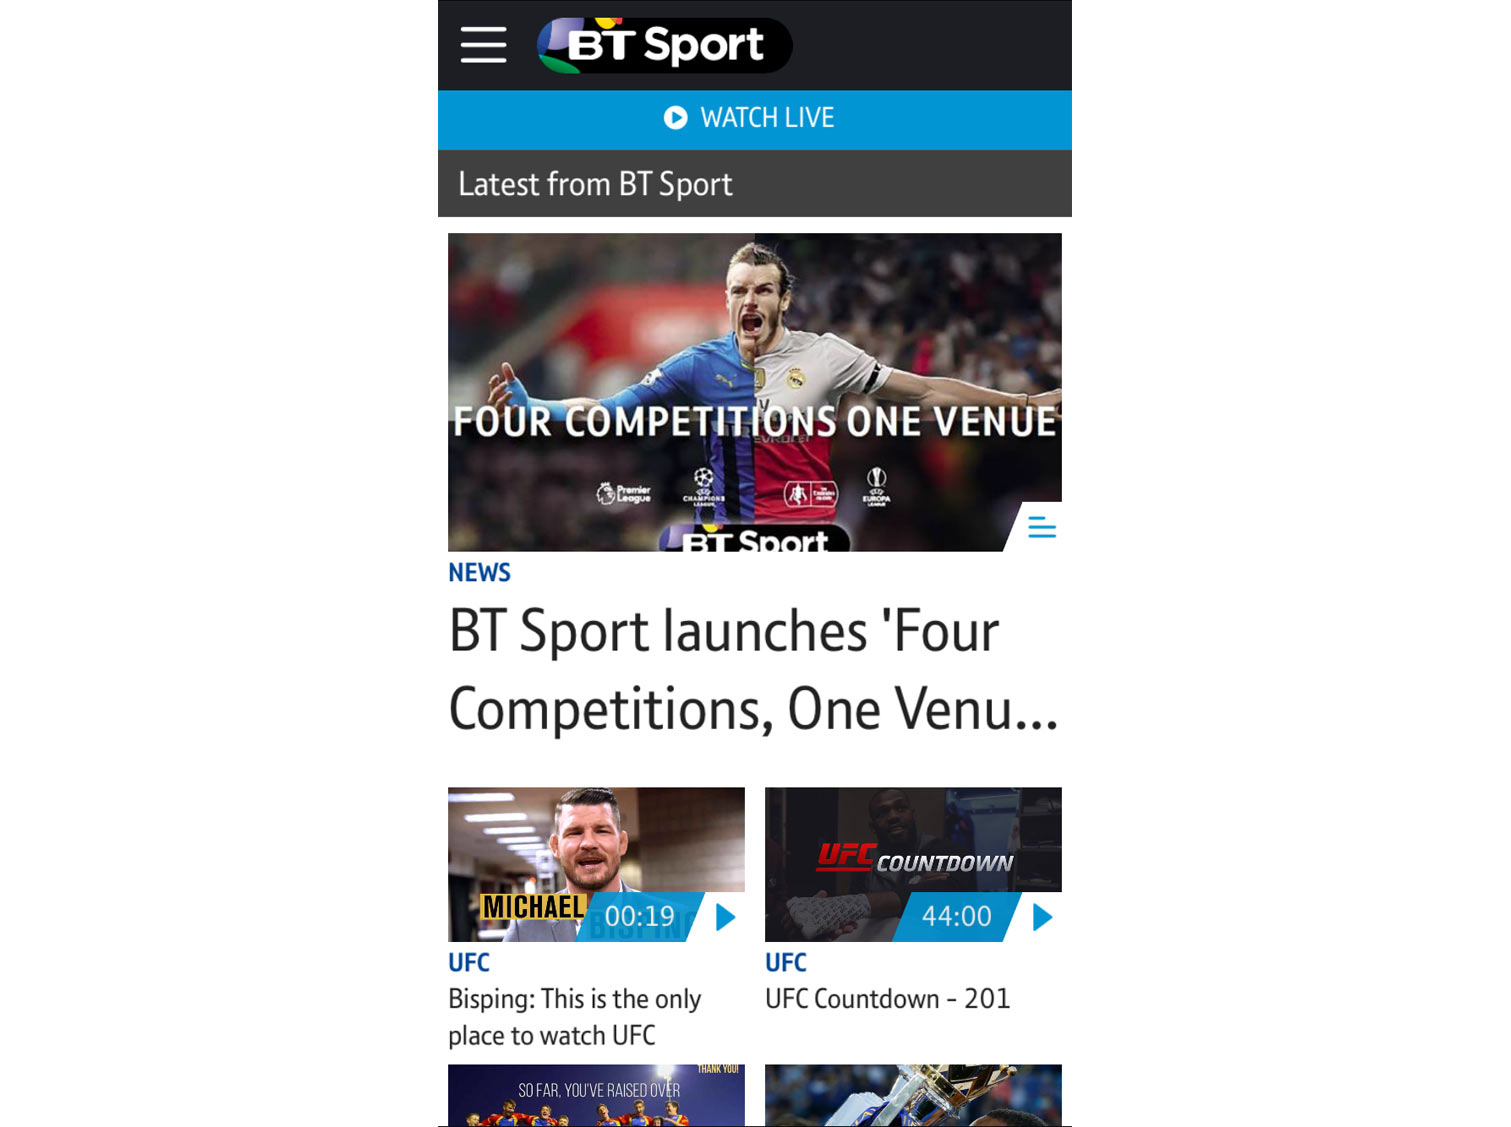 BT Sport app home page